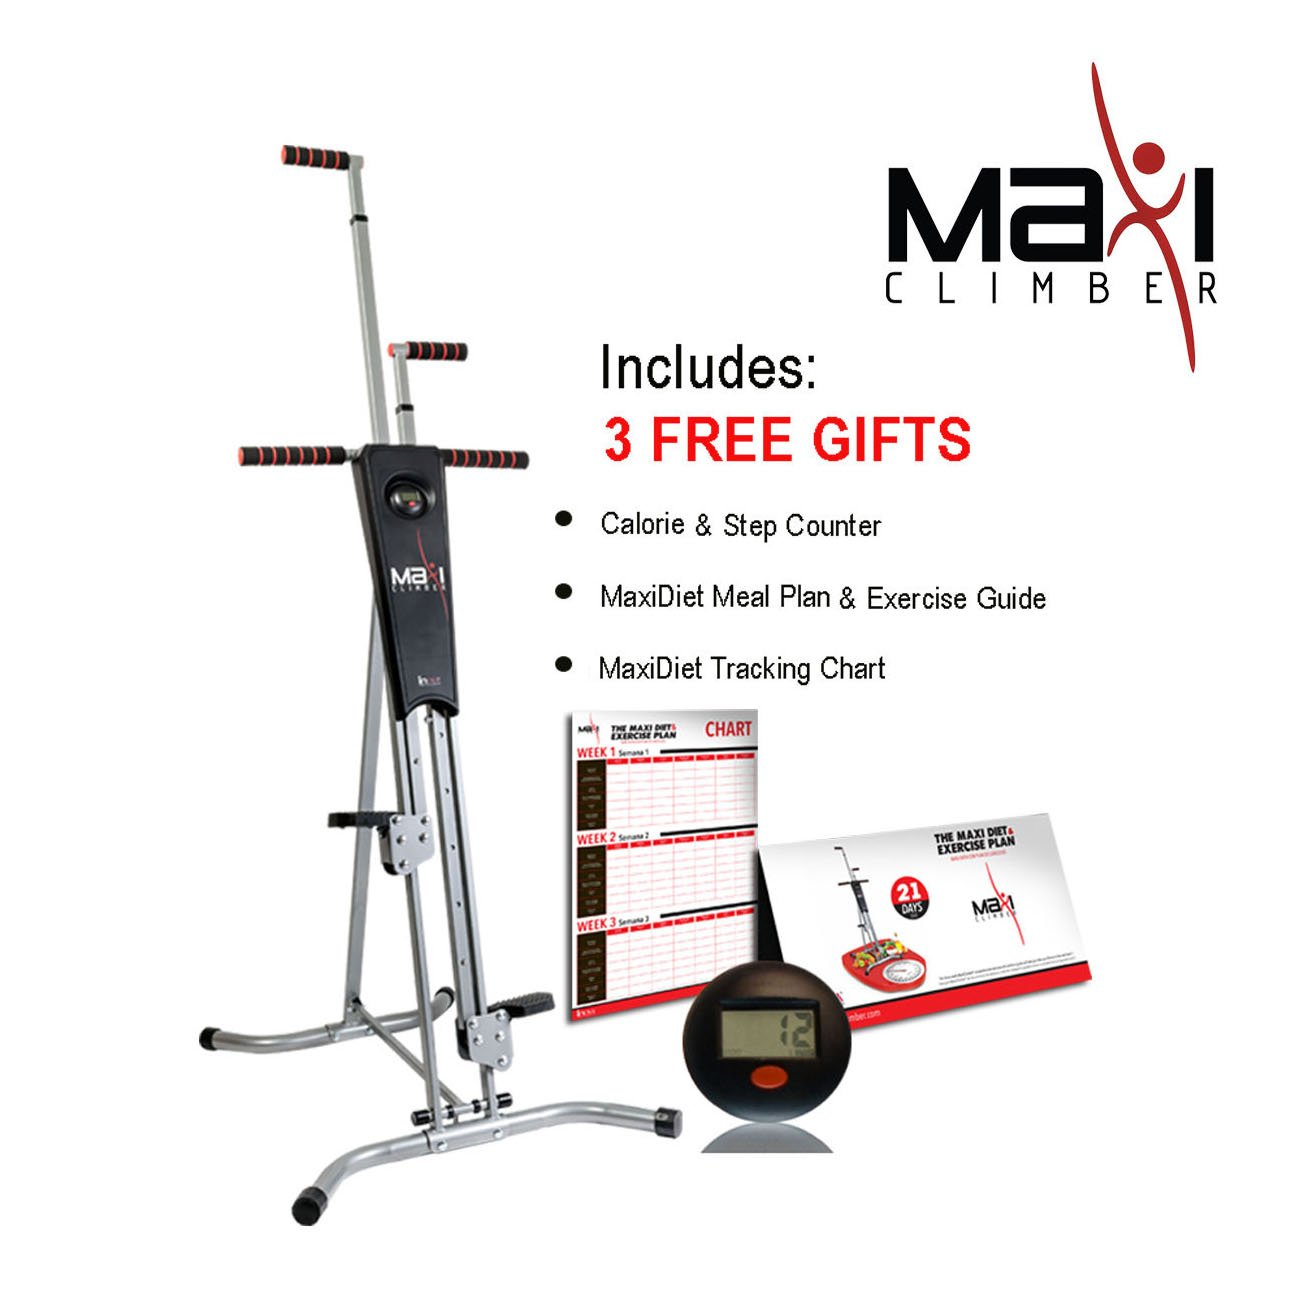 maxi climber 3 free gifts